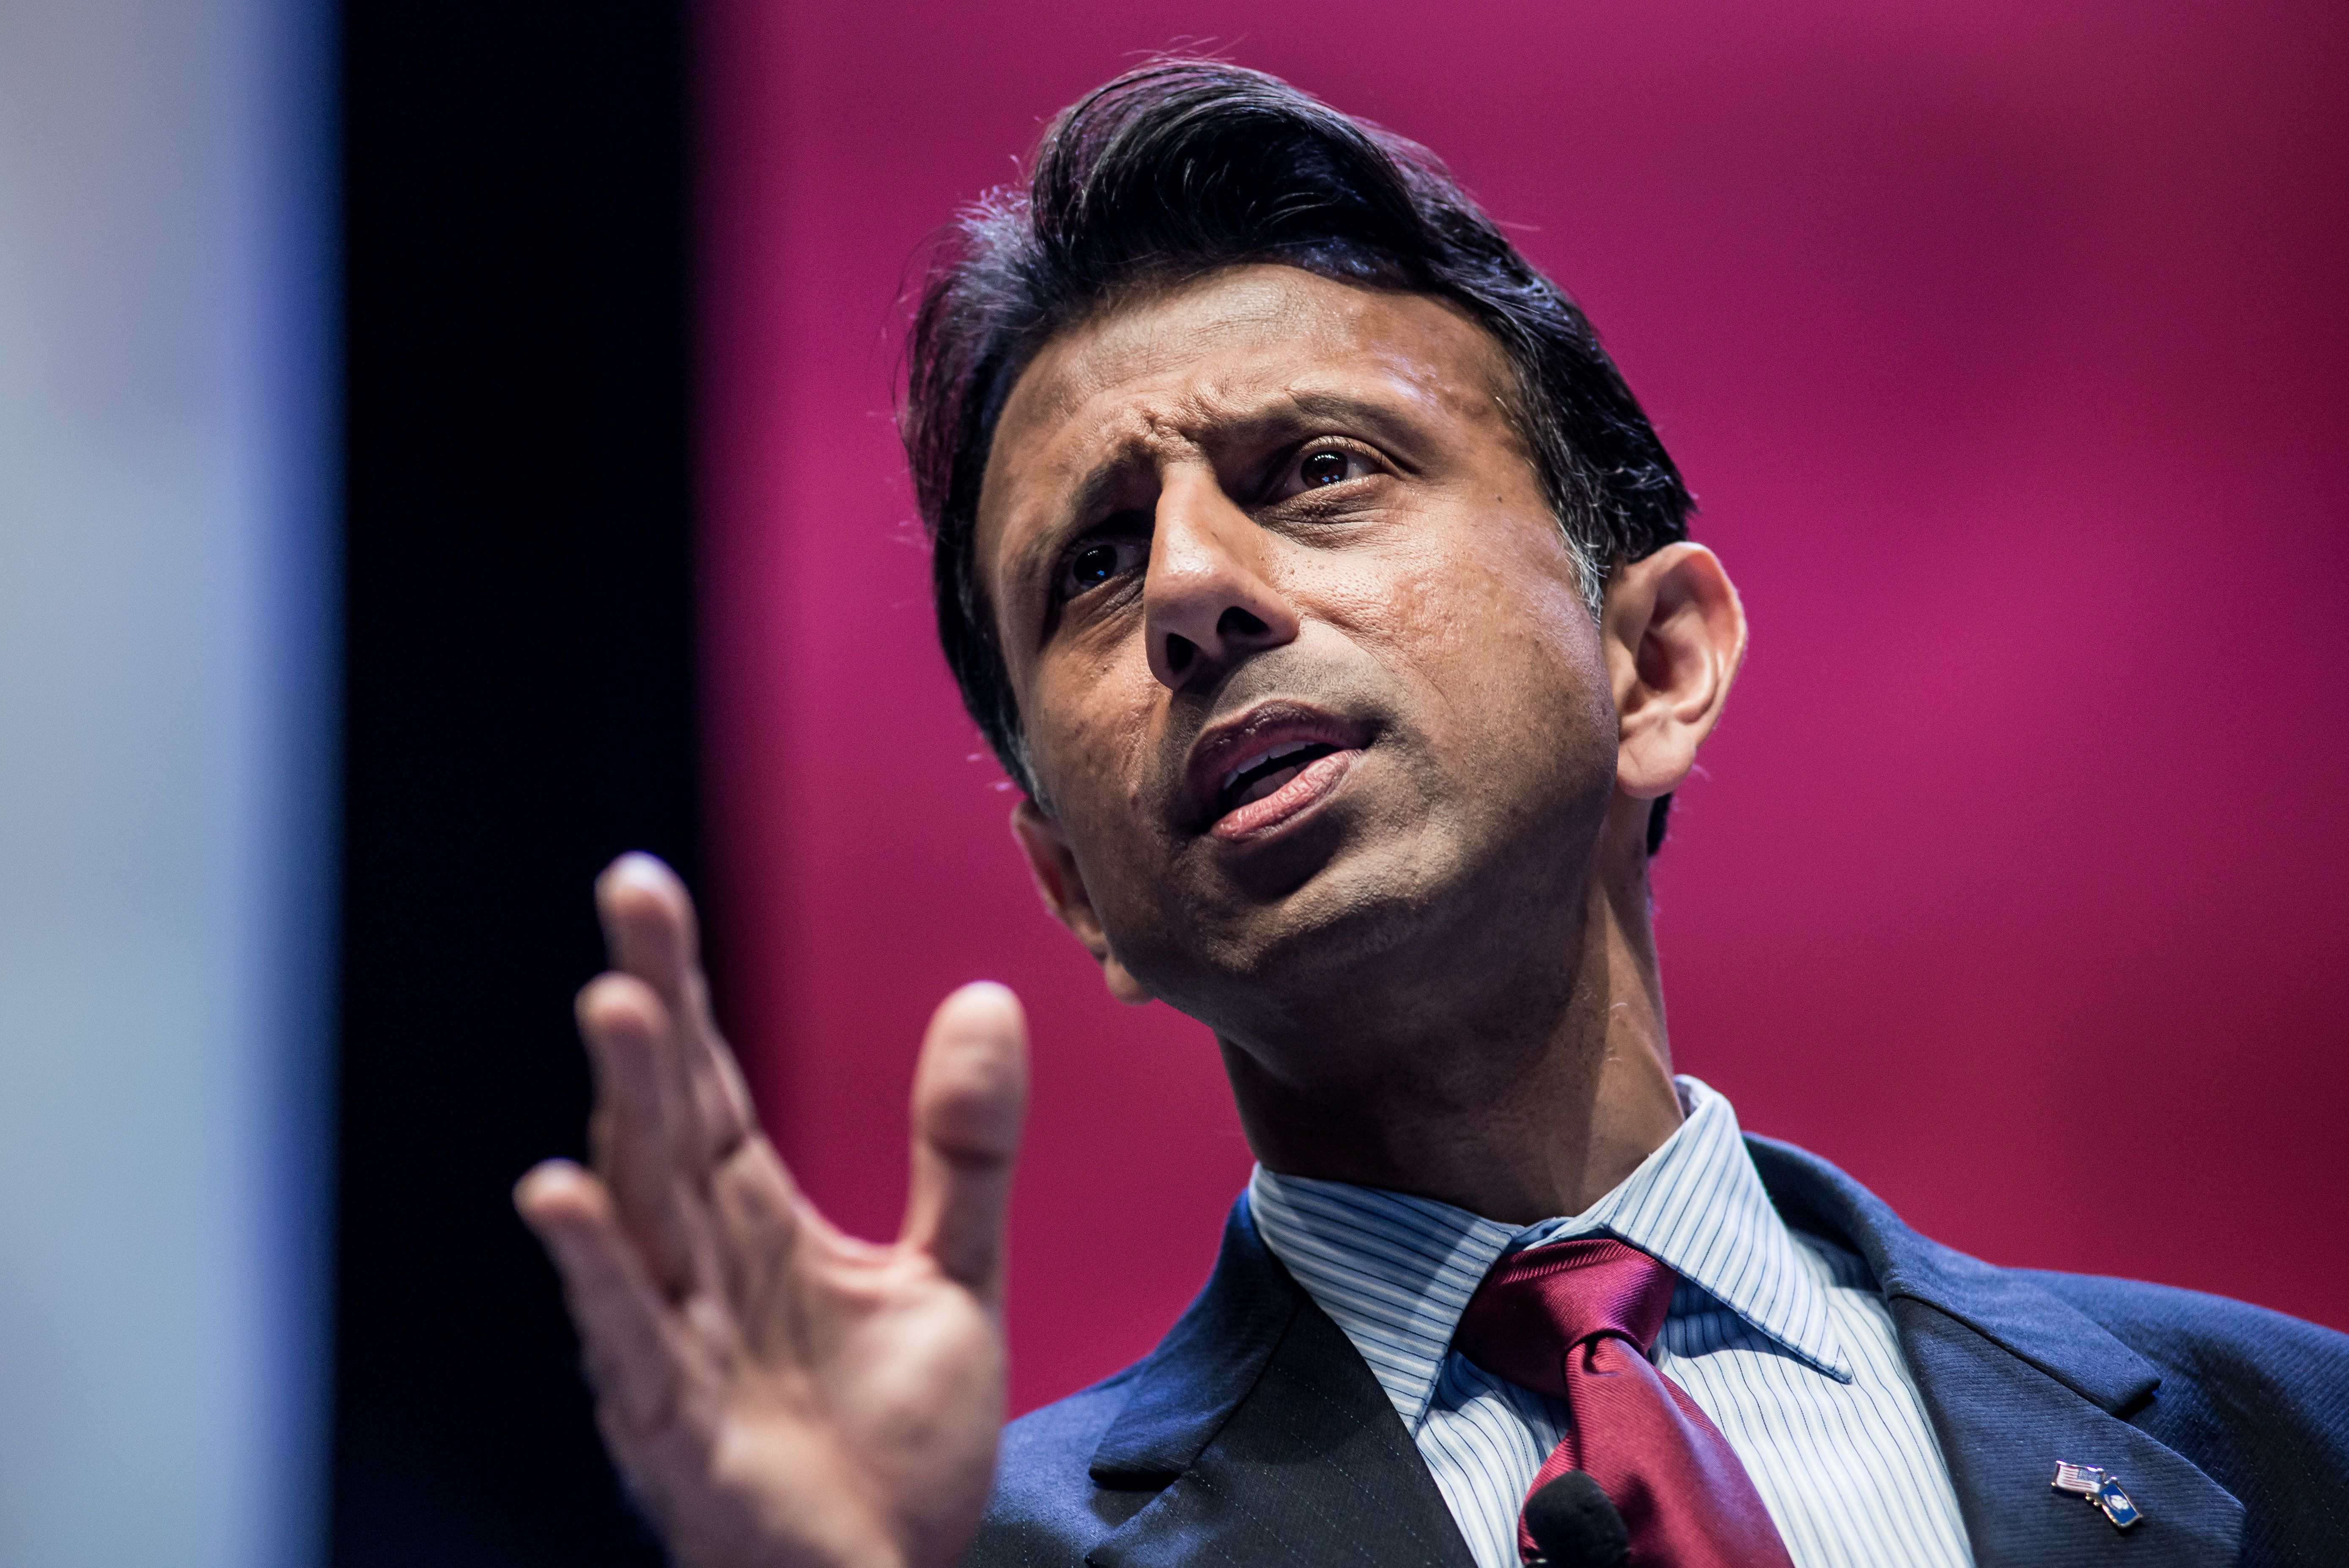 GREENVILLE, SC - SEPTEMBER 18:  Louisiana Governor and presidential candidate Bobby Jindal speaks to voters at the Heritage Action Presidential Candidate Forum September 18, 2015 in Greenville, South Carolina. Ten republican candidates were each given 25 minutes to talk to the crowd at the Bons Secours Wellness Arena in the upstate of South Carolina. (Photo by Sean Rayford/Getty Images)